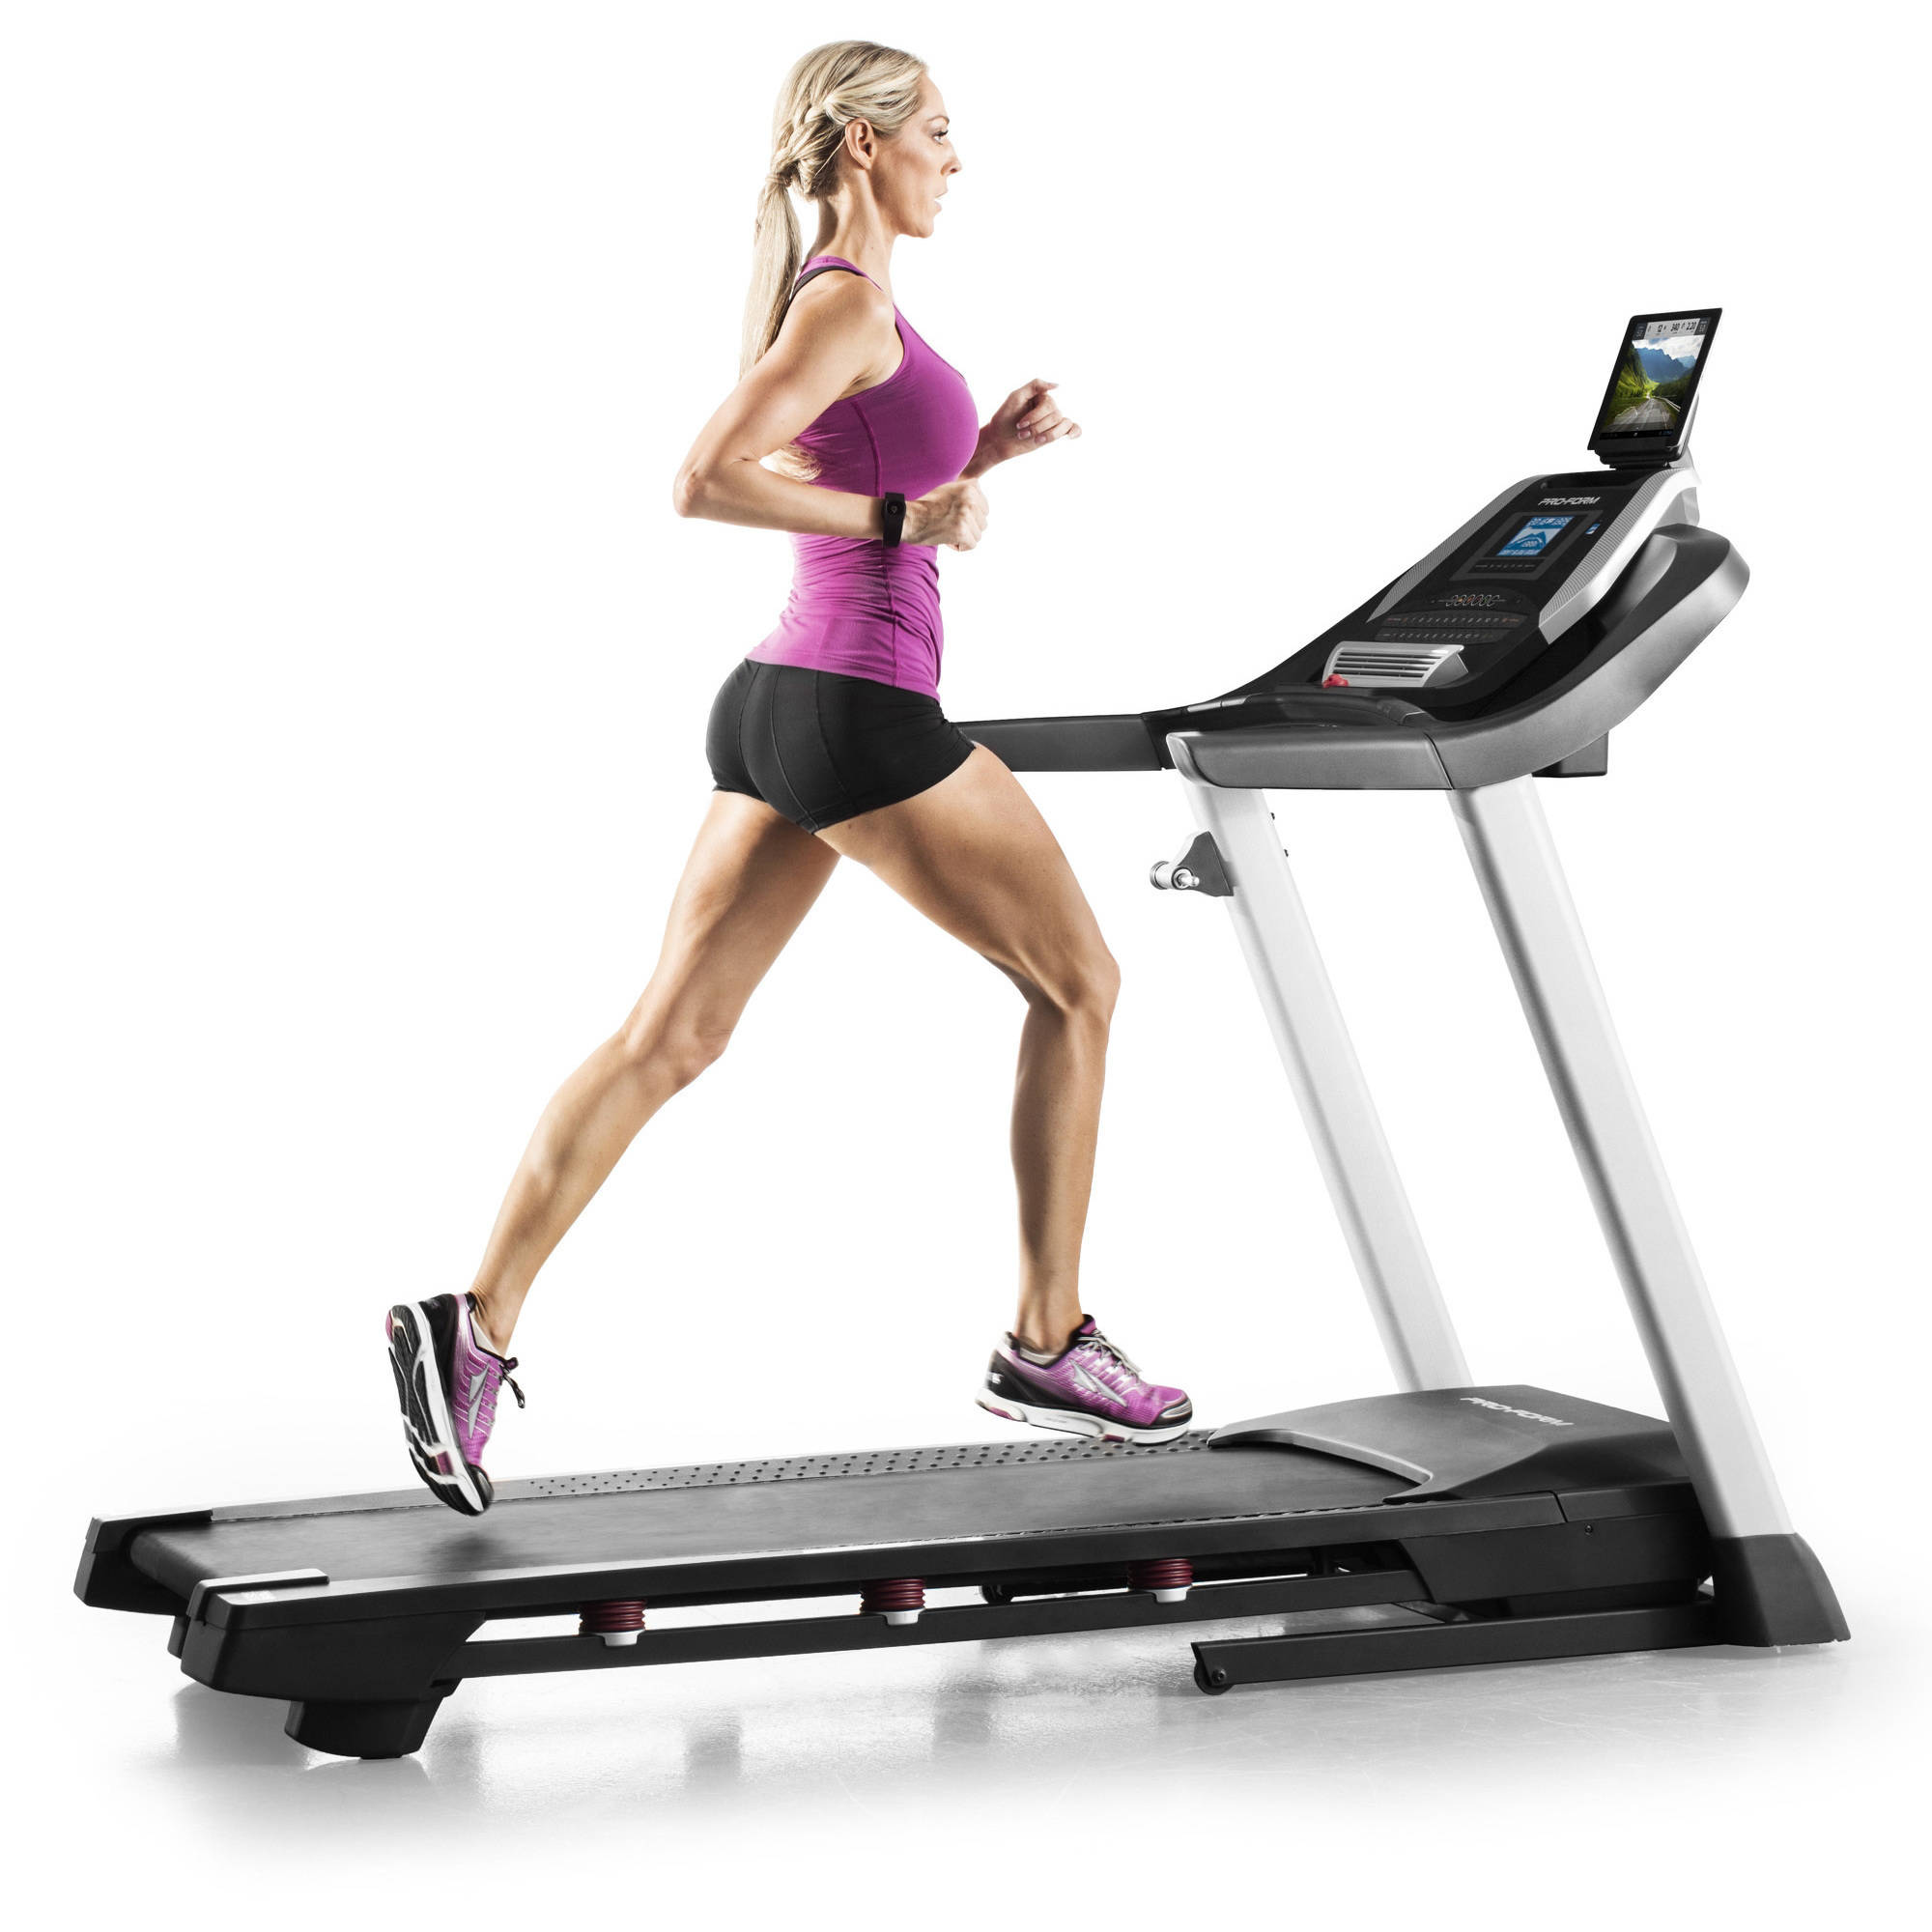 ProForm 705 CST Folding Treadmill with 2.75 CHP Motor and 12% Auto Incline